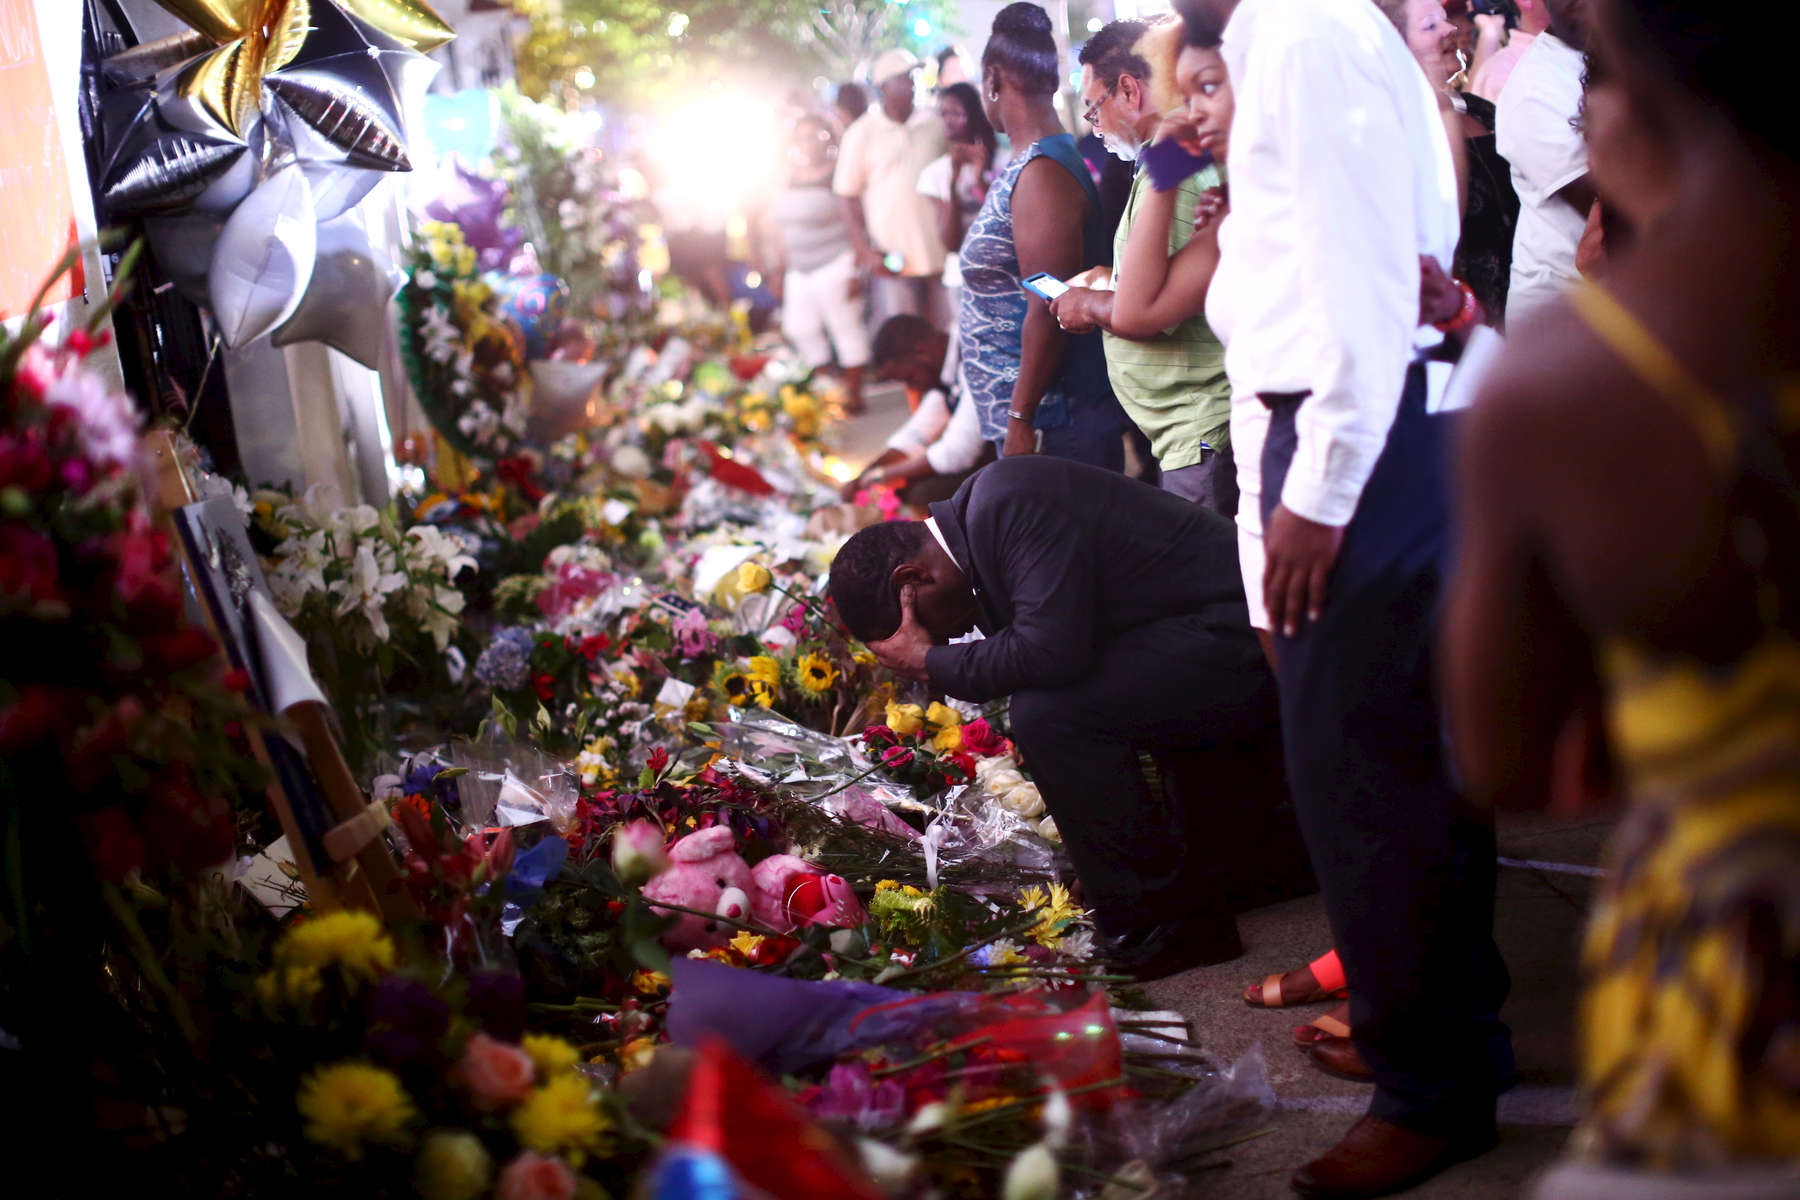 NAT *** Charleston, SC -- 06/19/2015 - A vigil was held on Friday at  College of Charleston TD Arena in in Charleston, SC. Afterward, people gathered, sang, and prayed outside of Emanuel AME Church.(Travis Dove for The New York Times)